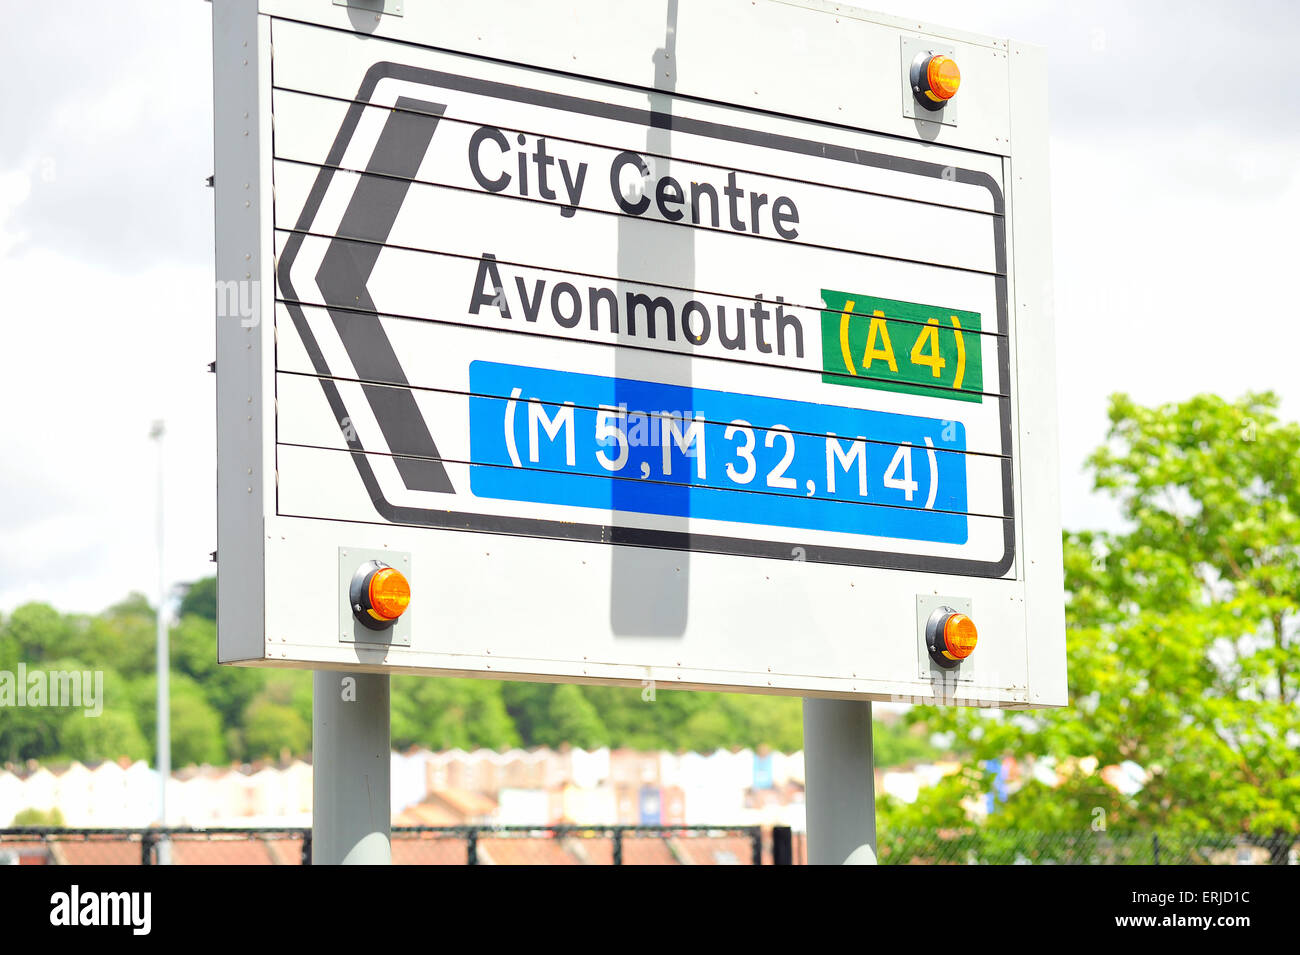 A road sign in Bristol directing traffic towards the city centre and Avonmouth. - Stock Image